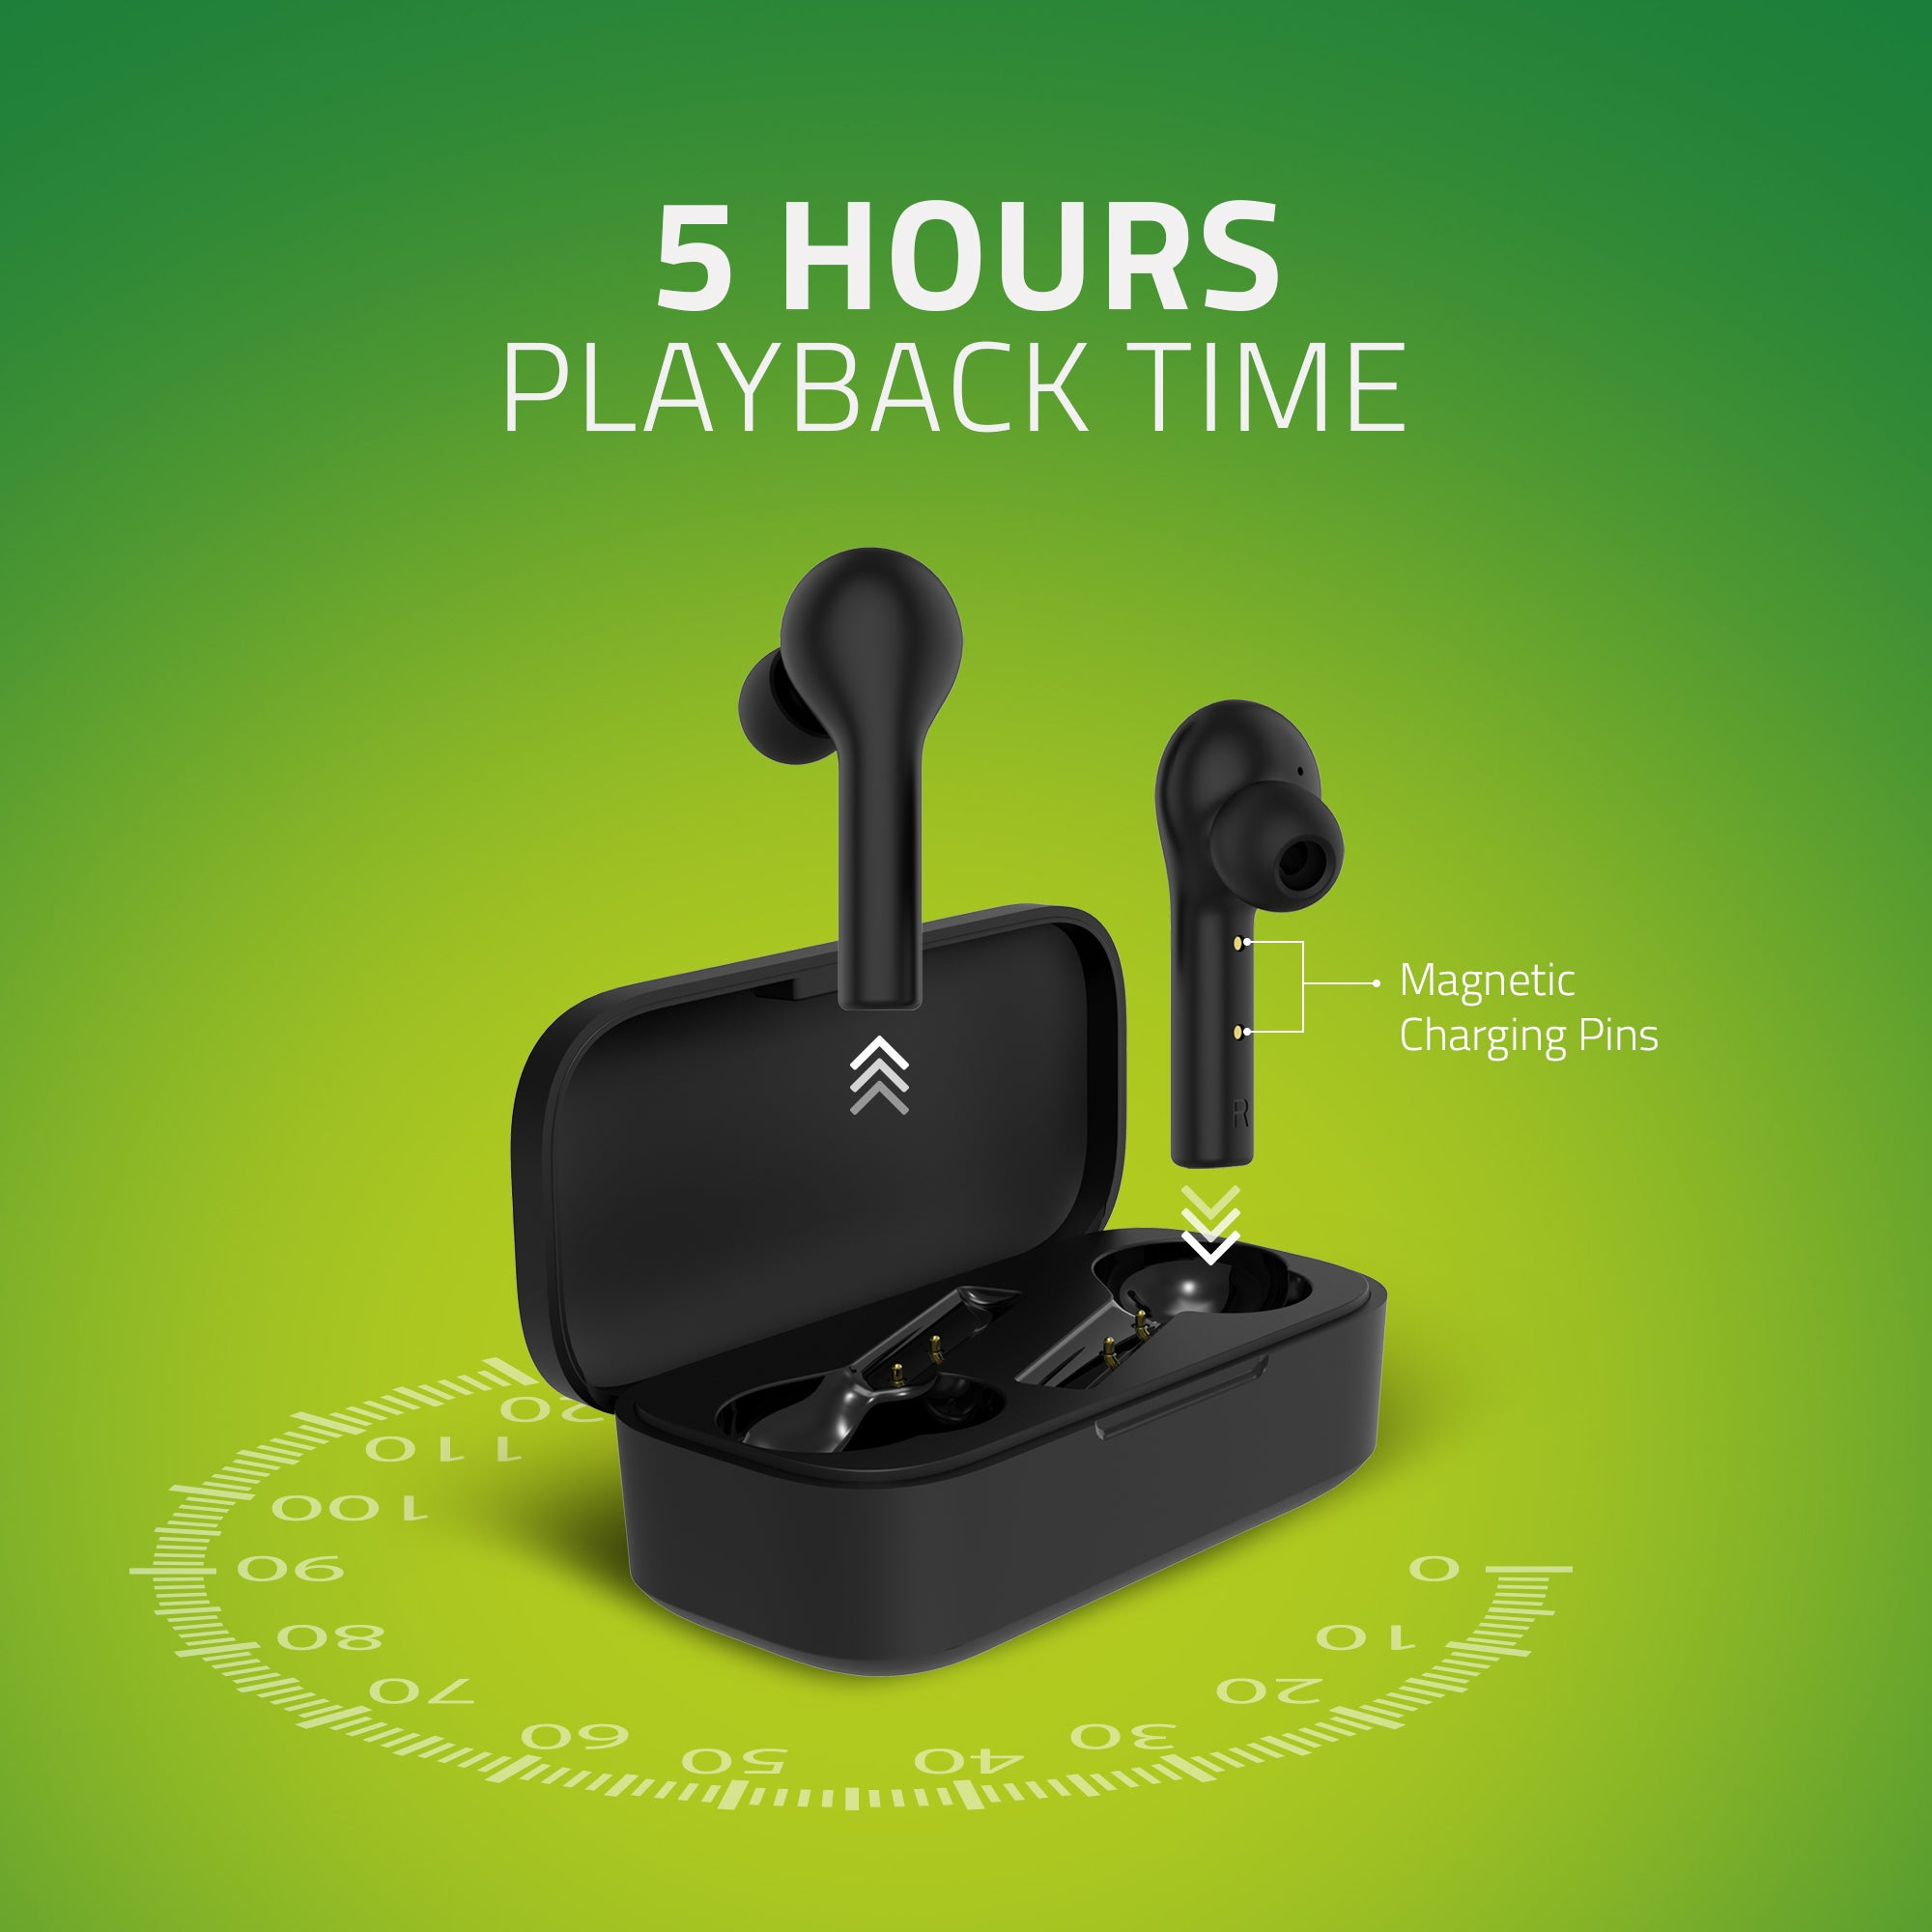 BE110M Artis TWS Earbuds - 5 Hours Playback Time